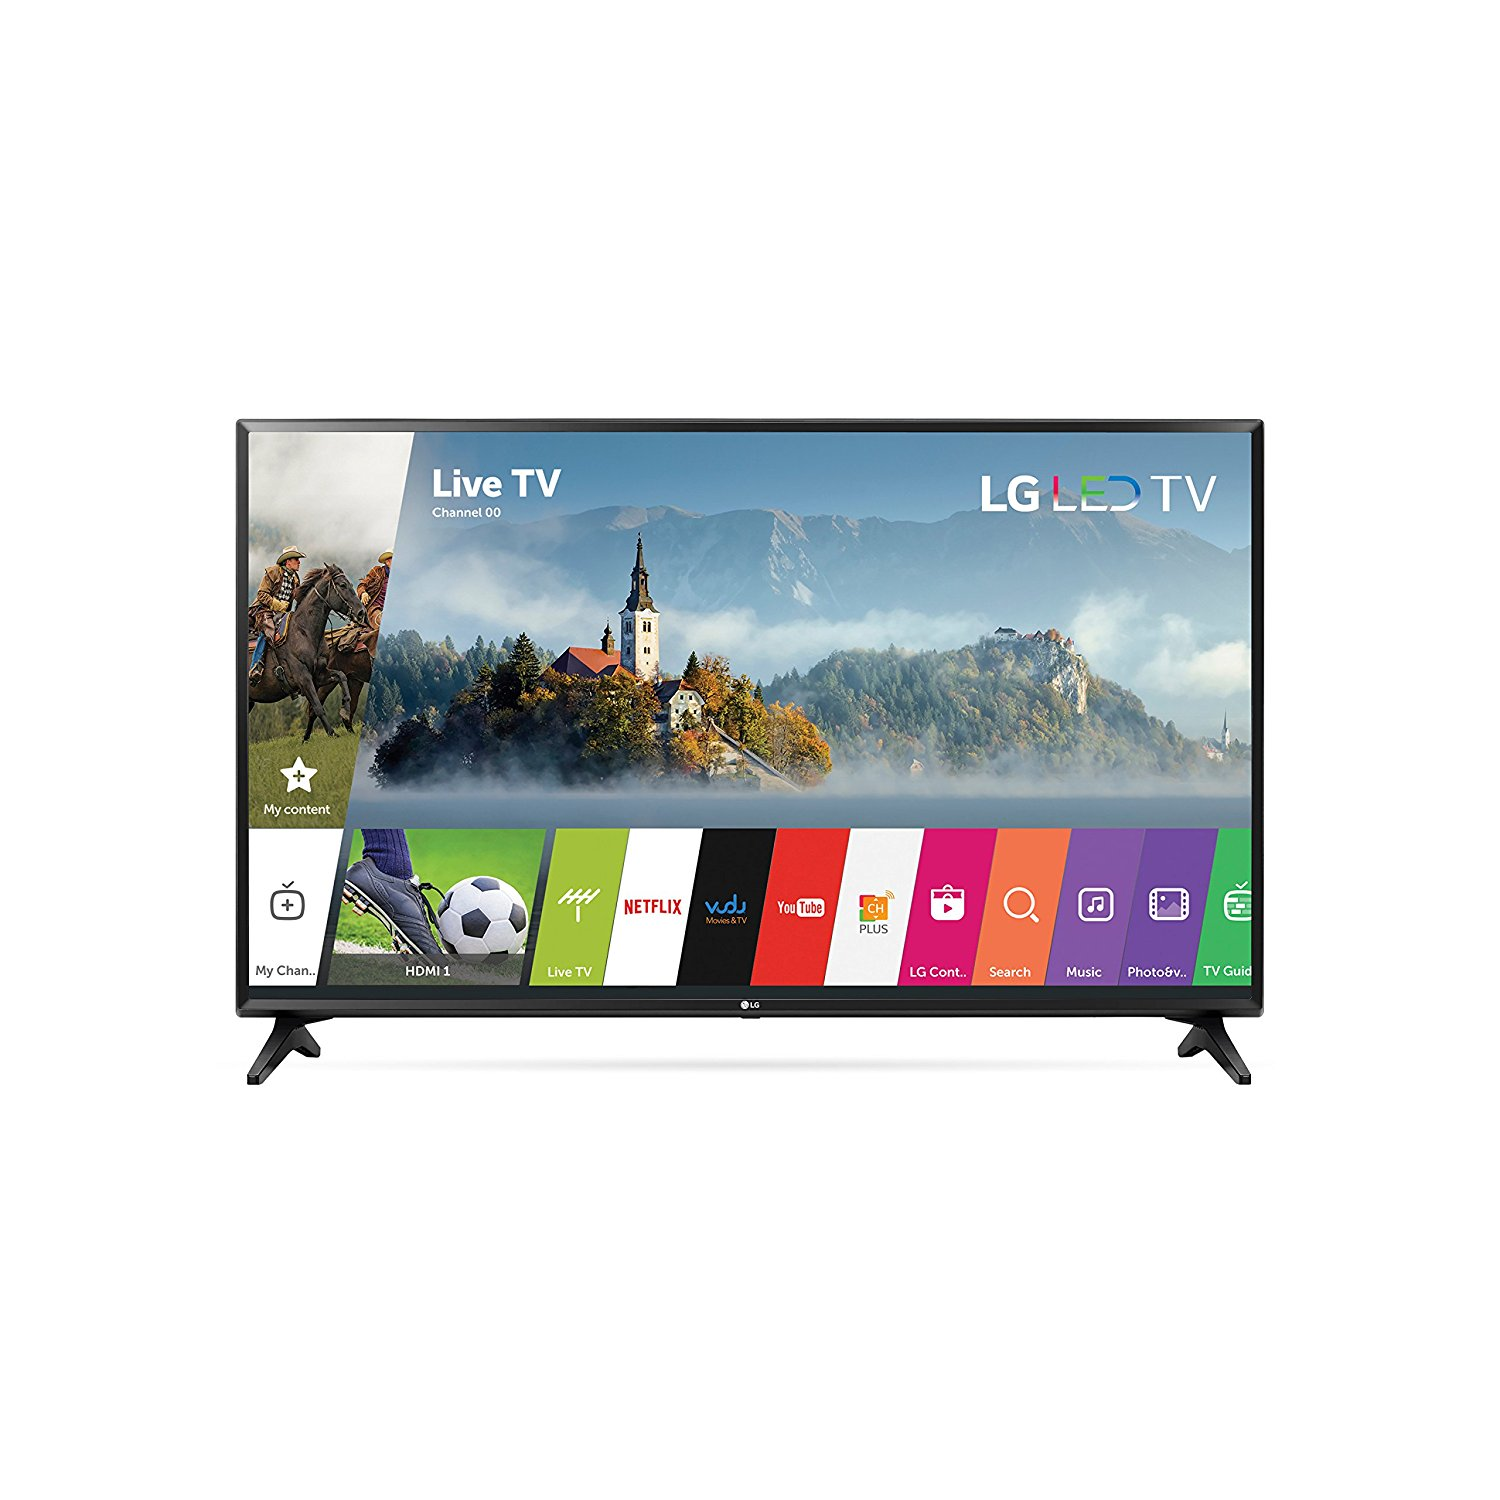 Lg Electronics 43lj5500 43 Inch 1080p Smart Led Tv 2017